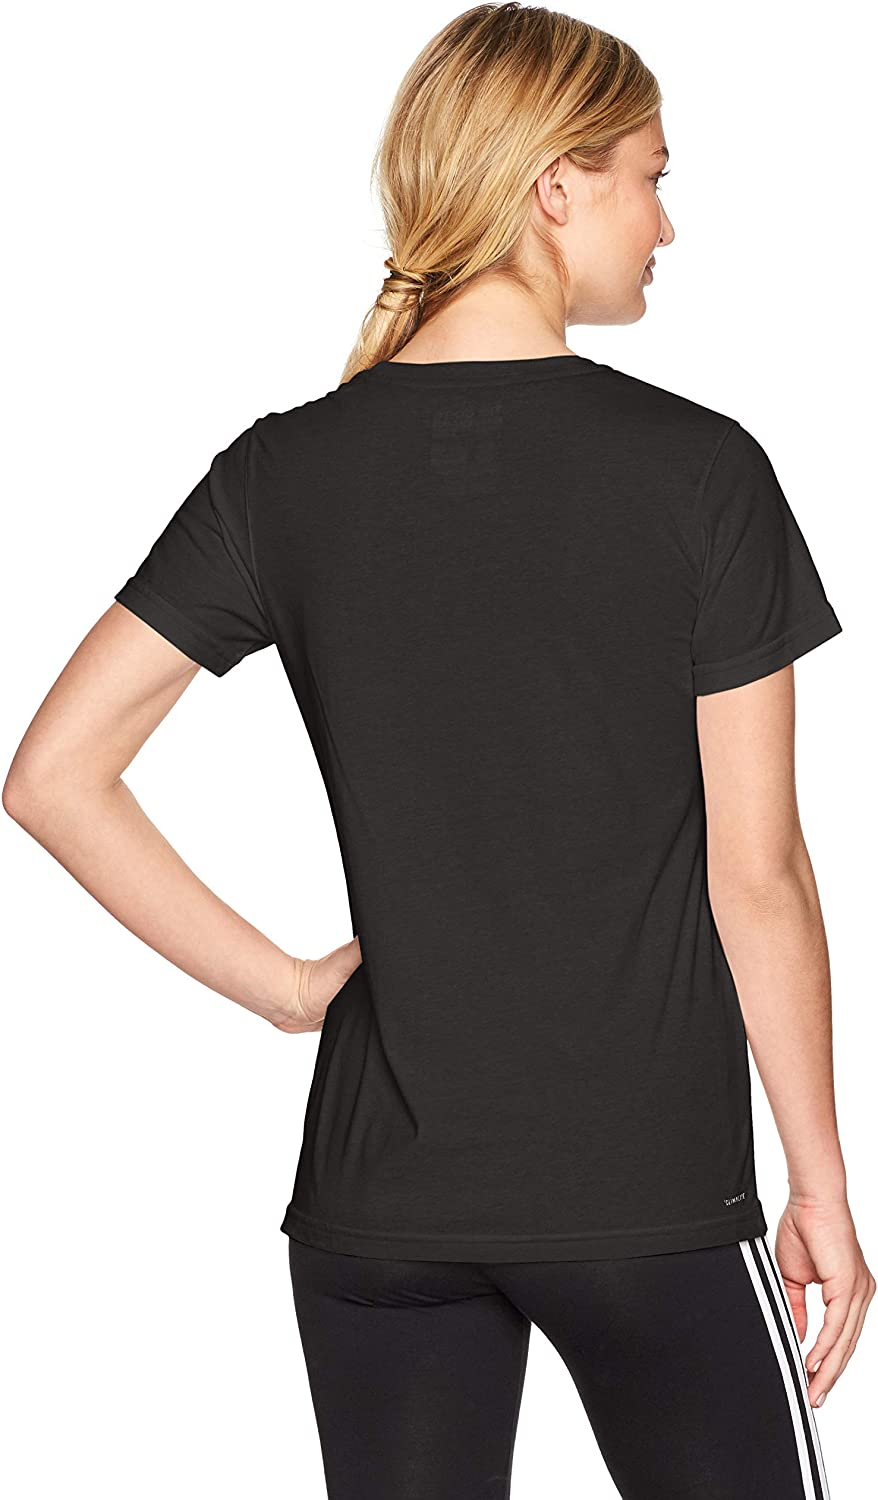 adidas W Bos Co T in Chemise Femme Black/White/Bos Smoothie